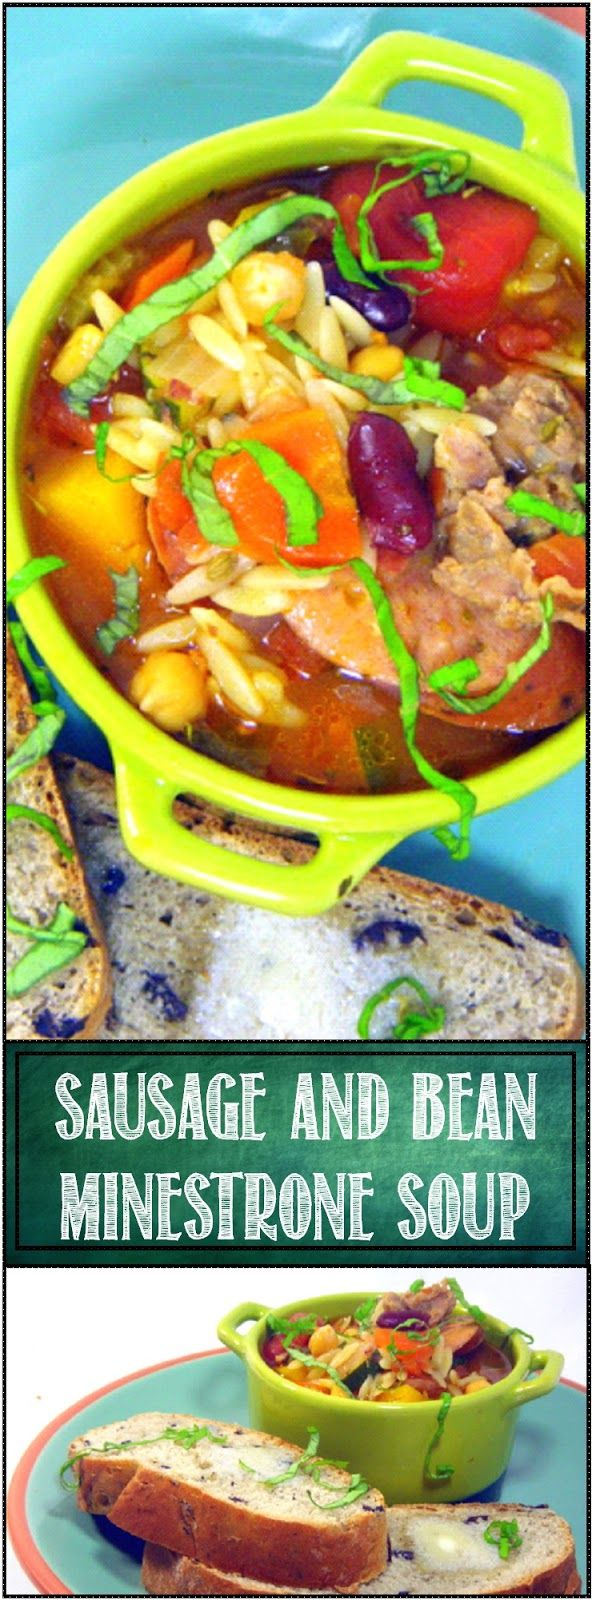 """Sausage and Beans Minestrone """"Salsicce e fagioli Minestrone"""" This is as hearty a soup as you can get. TWO kinds of Sausages, two Beans, two Root Vegetables, EVEN more vegetables, Tomatoes, all in a Tomato based broth... Even Orzo Pasta FANTASTIC FILLING HEARTY SOUP!"""